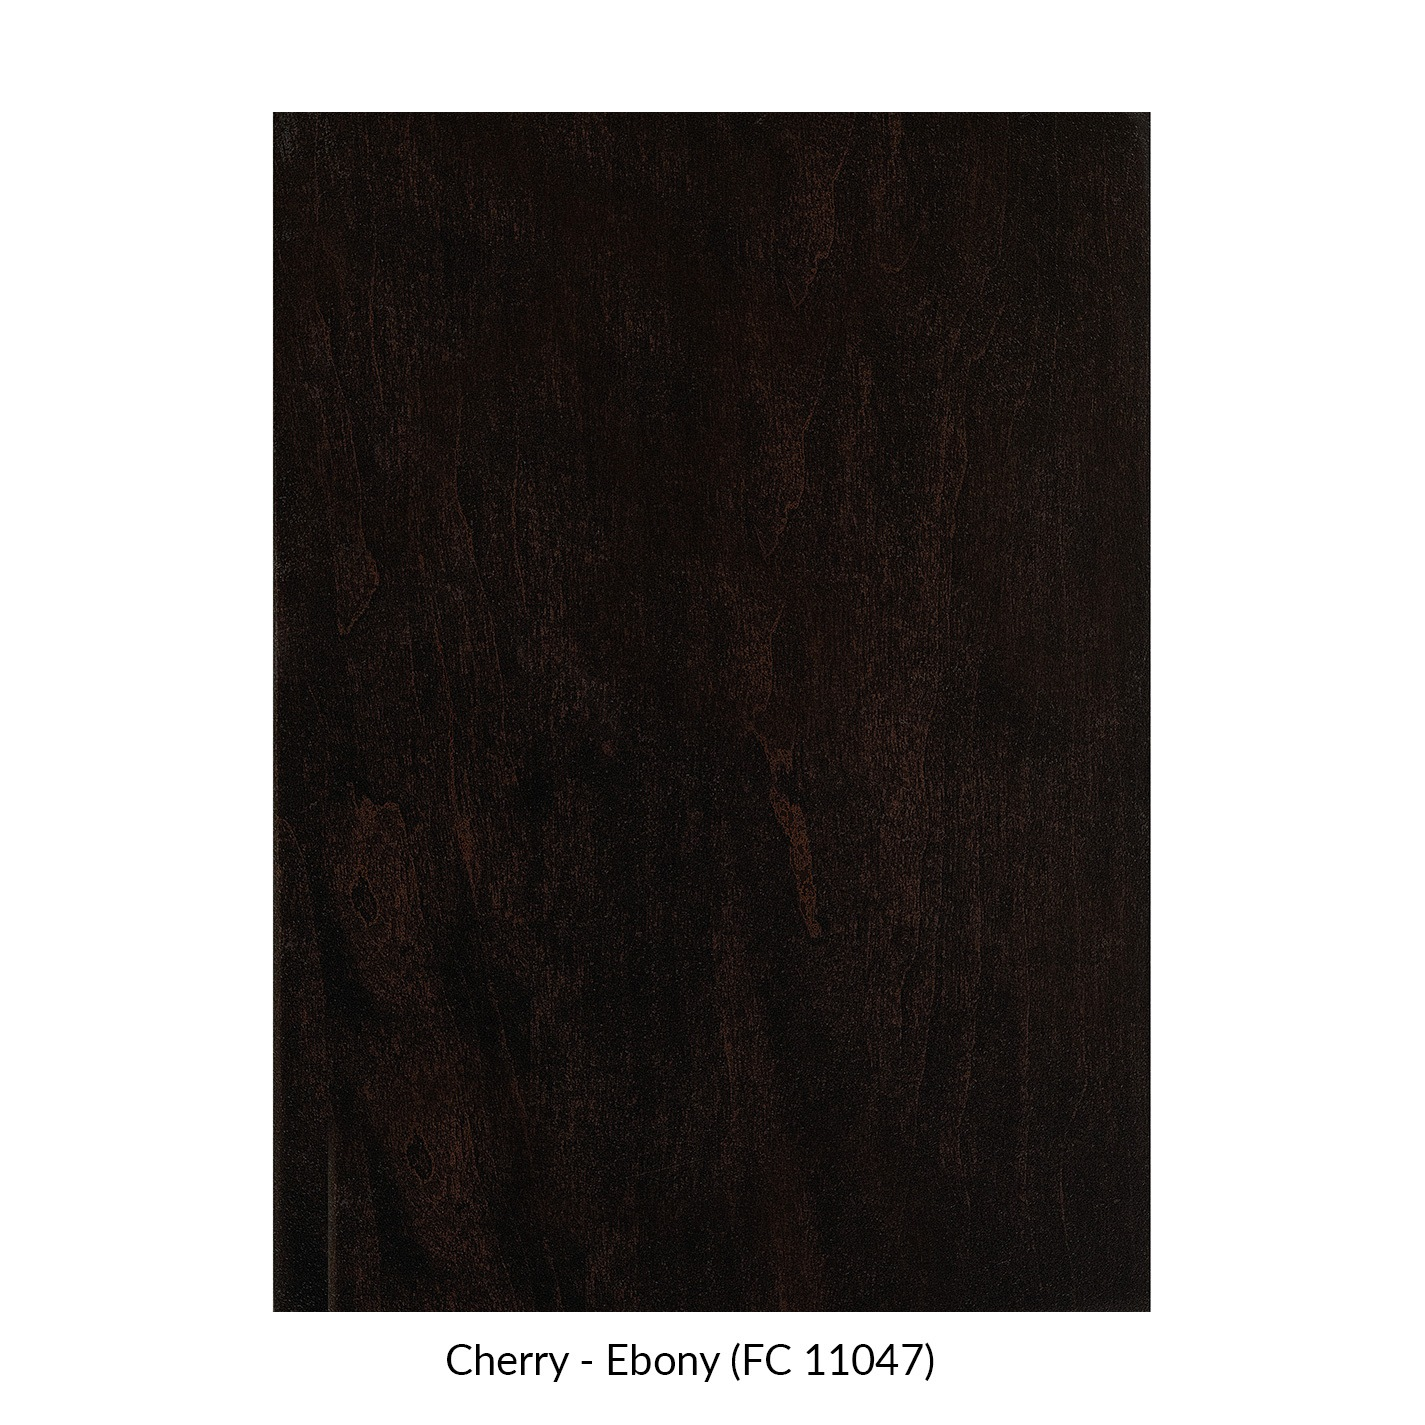 spectrum-cherry-ebony-fc-11047.jpg